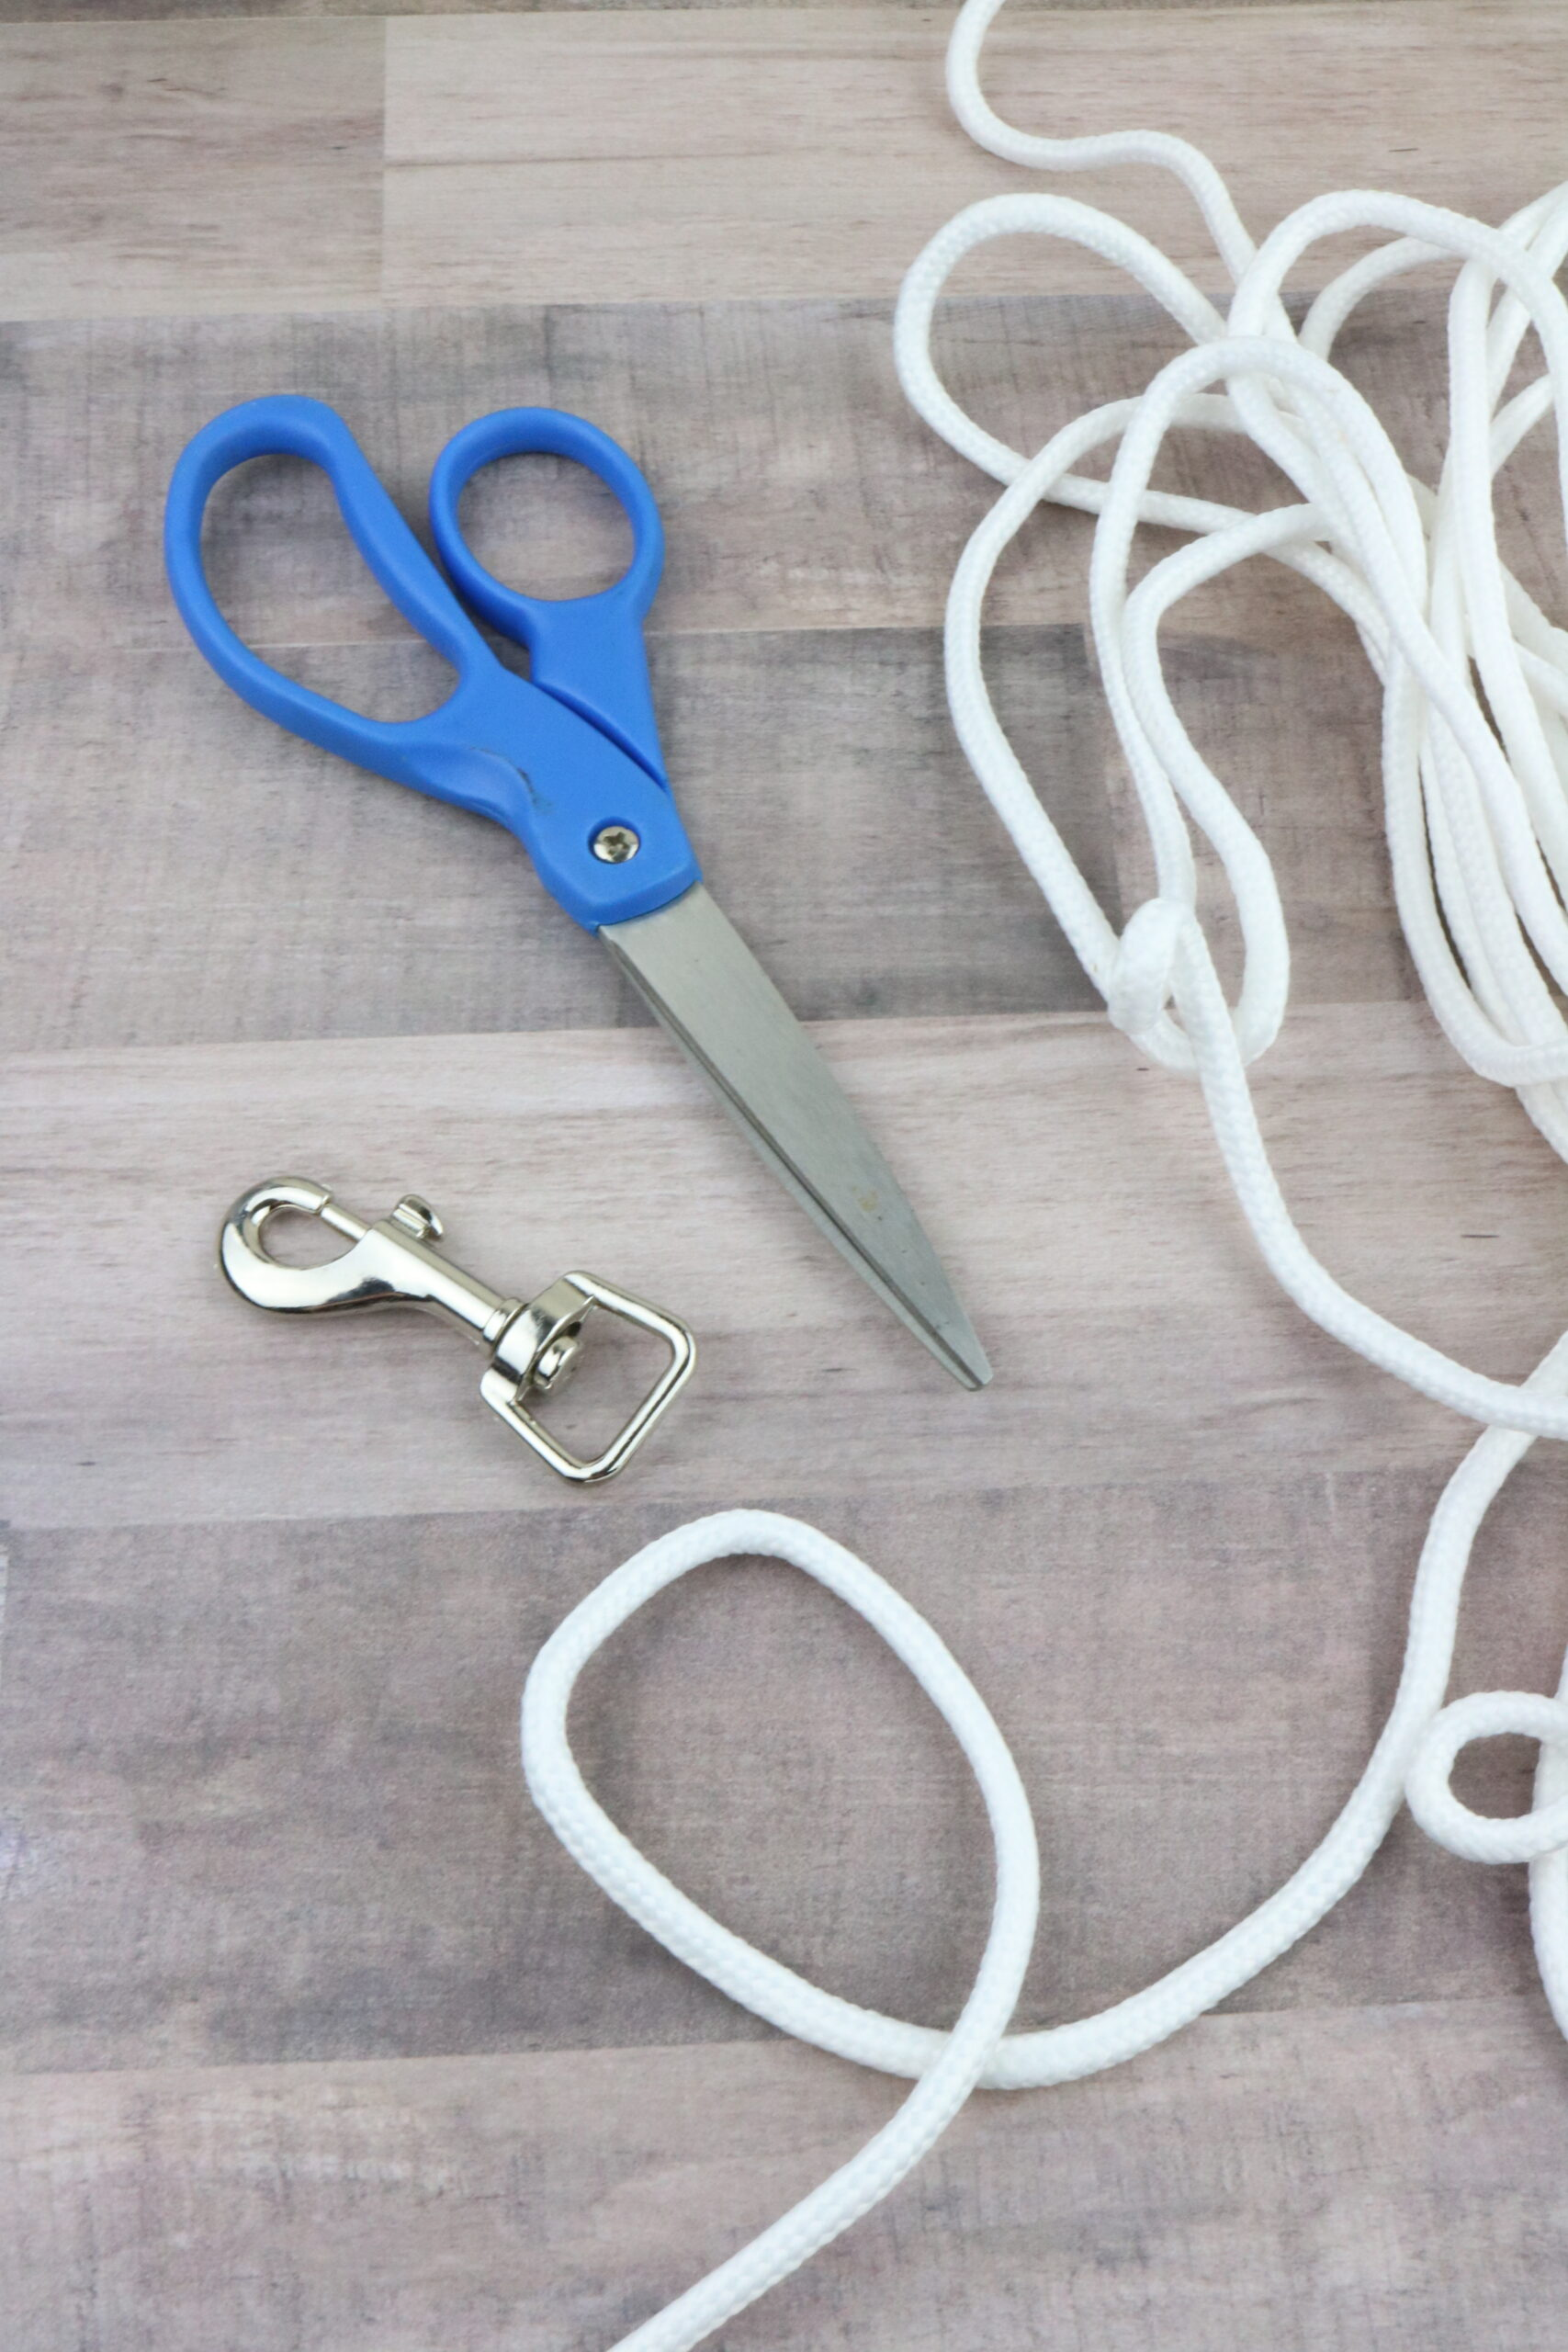 DIY Dog Leash Made From Clothesline supplies